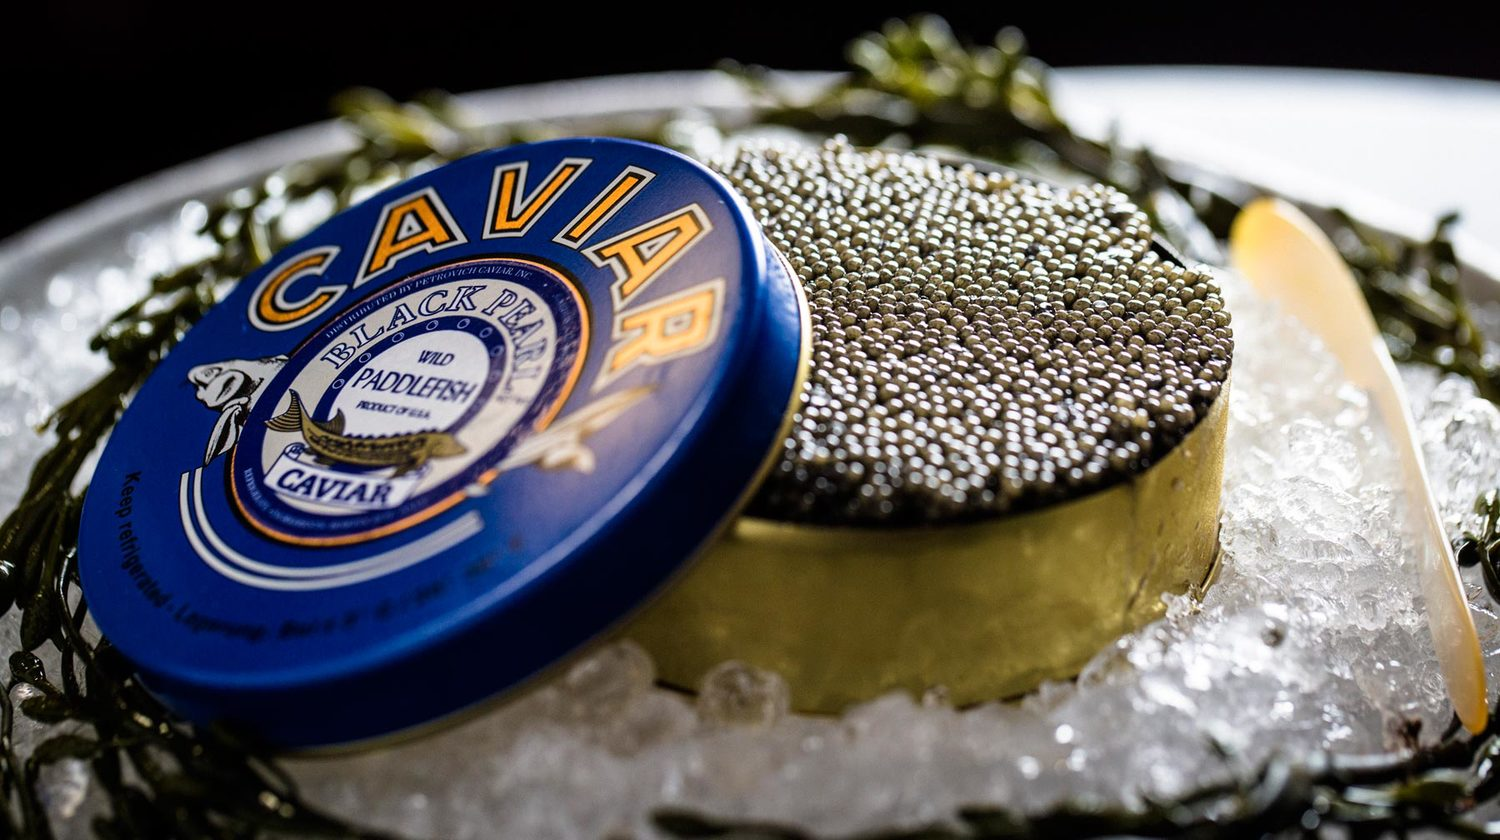 Caviar at Farallon